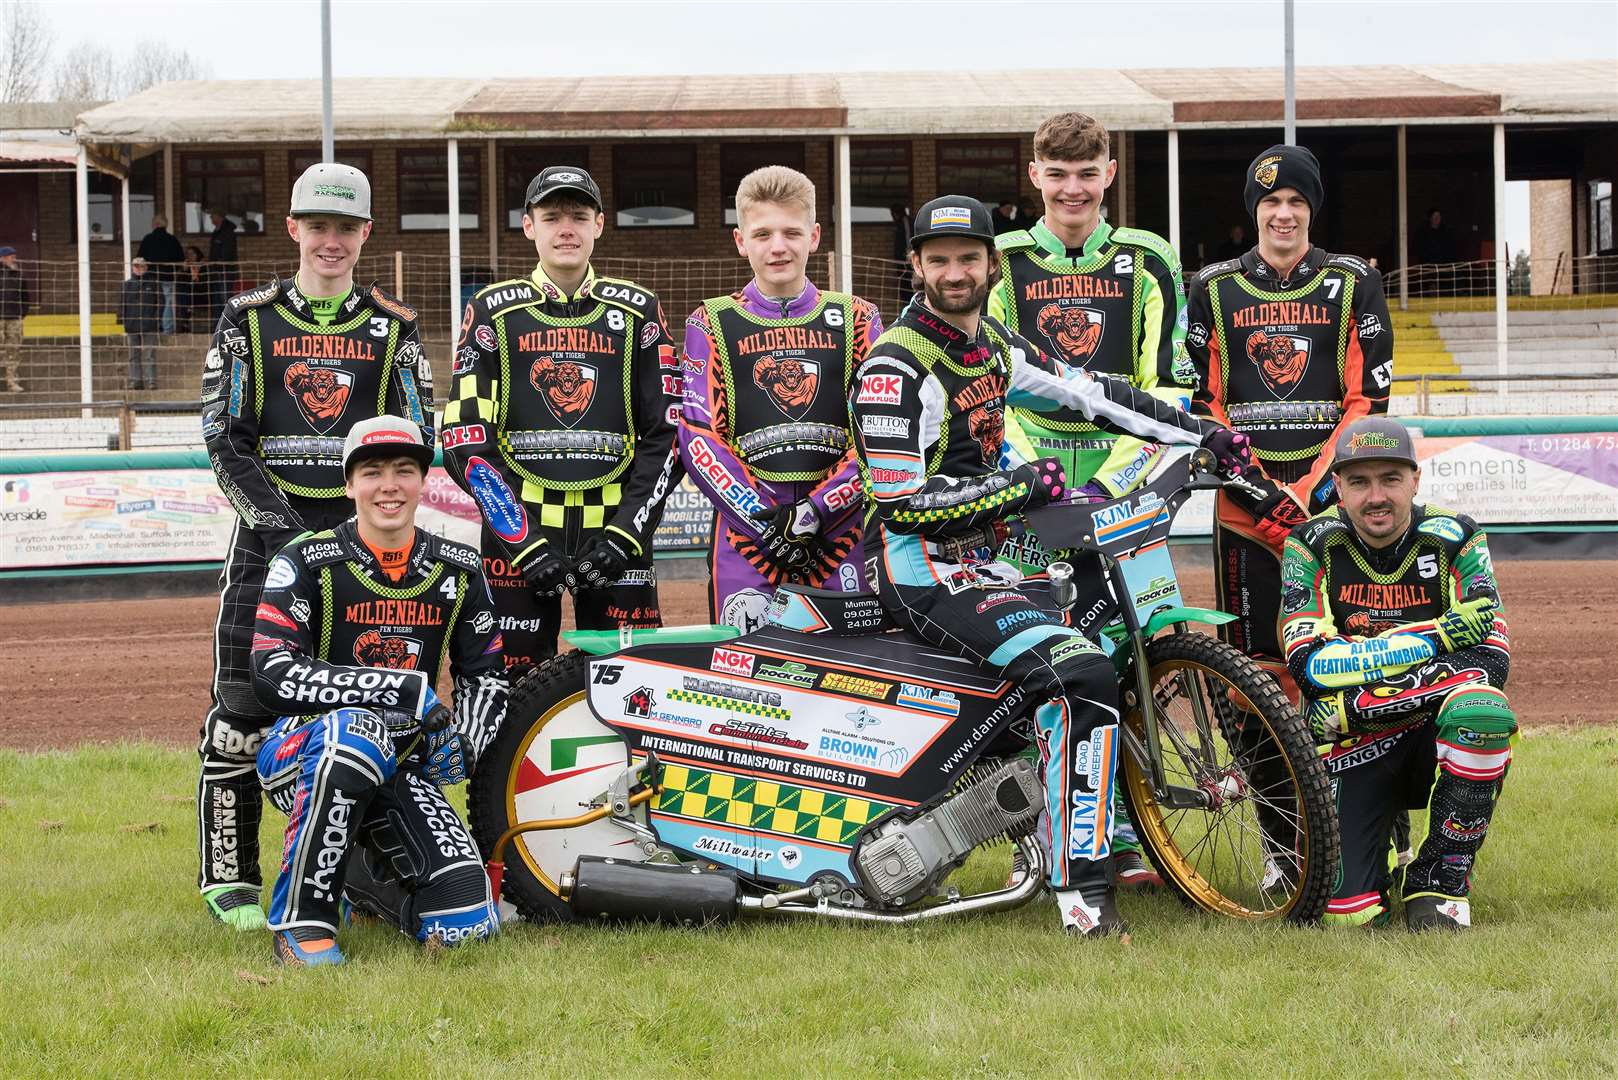 Mildenhall Fen Tigers Press and Practice DayFen Tigers team 2019 Danny Ayres, Sam Bebee, Charlie Brooks, Jason Edwards, Dave Wallinger, Elliot Kelly, Macauley Leek and Sam Norris Picture by Mark Westley. (12636723)